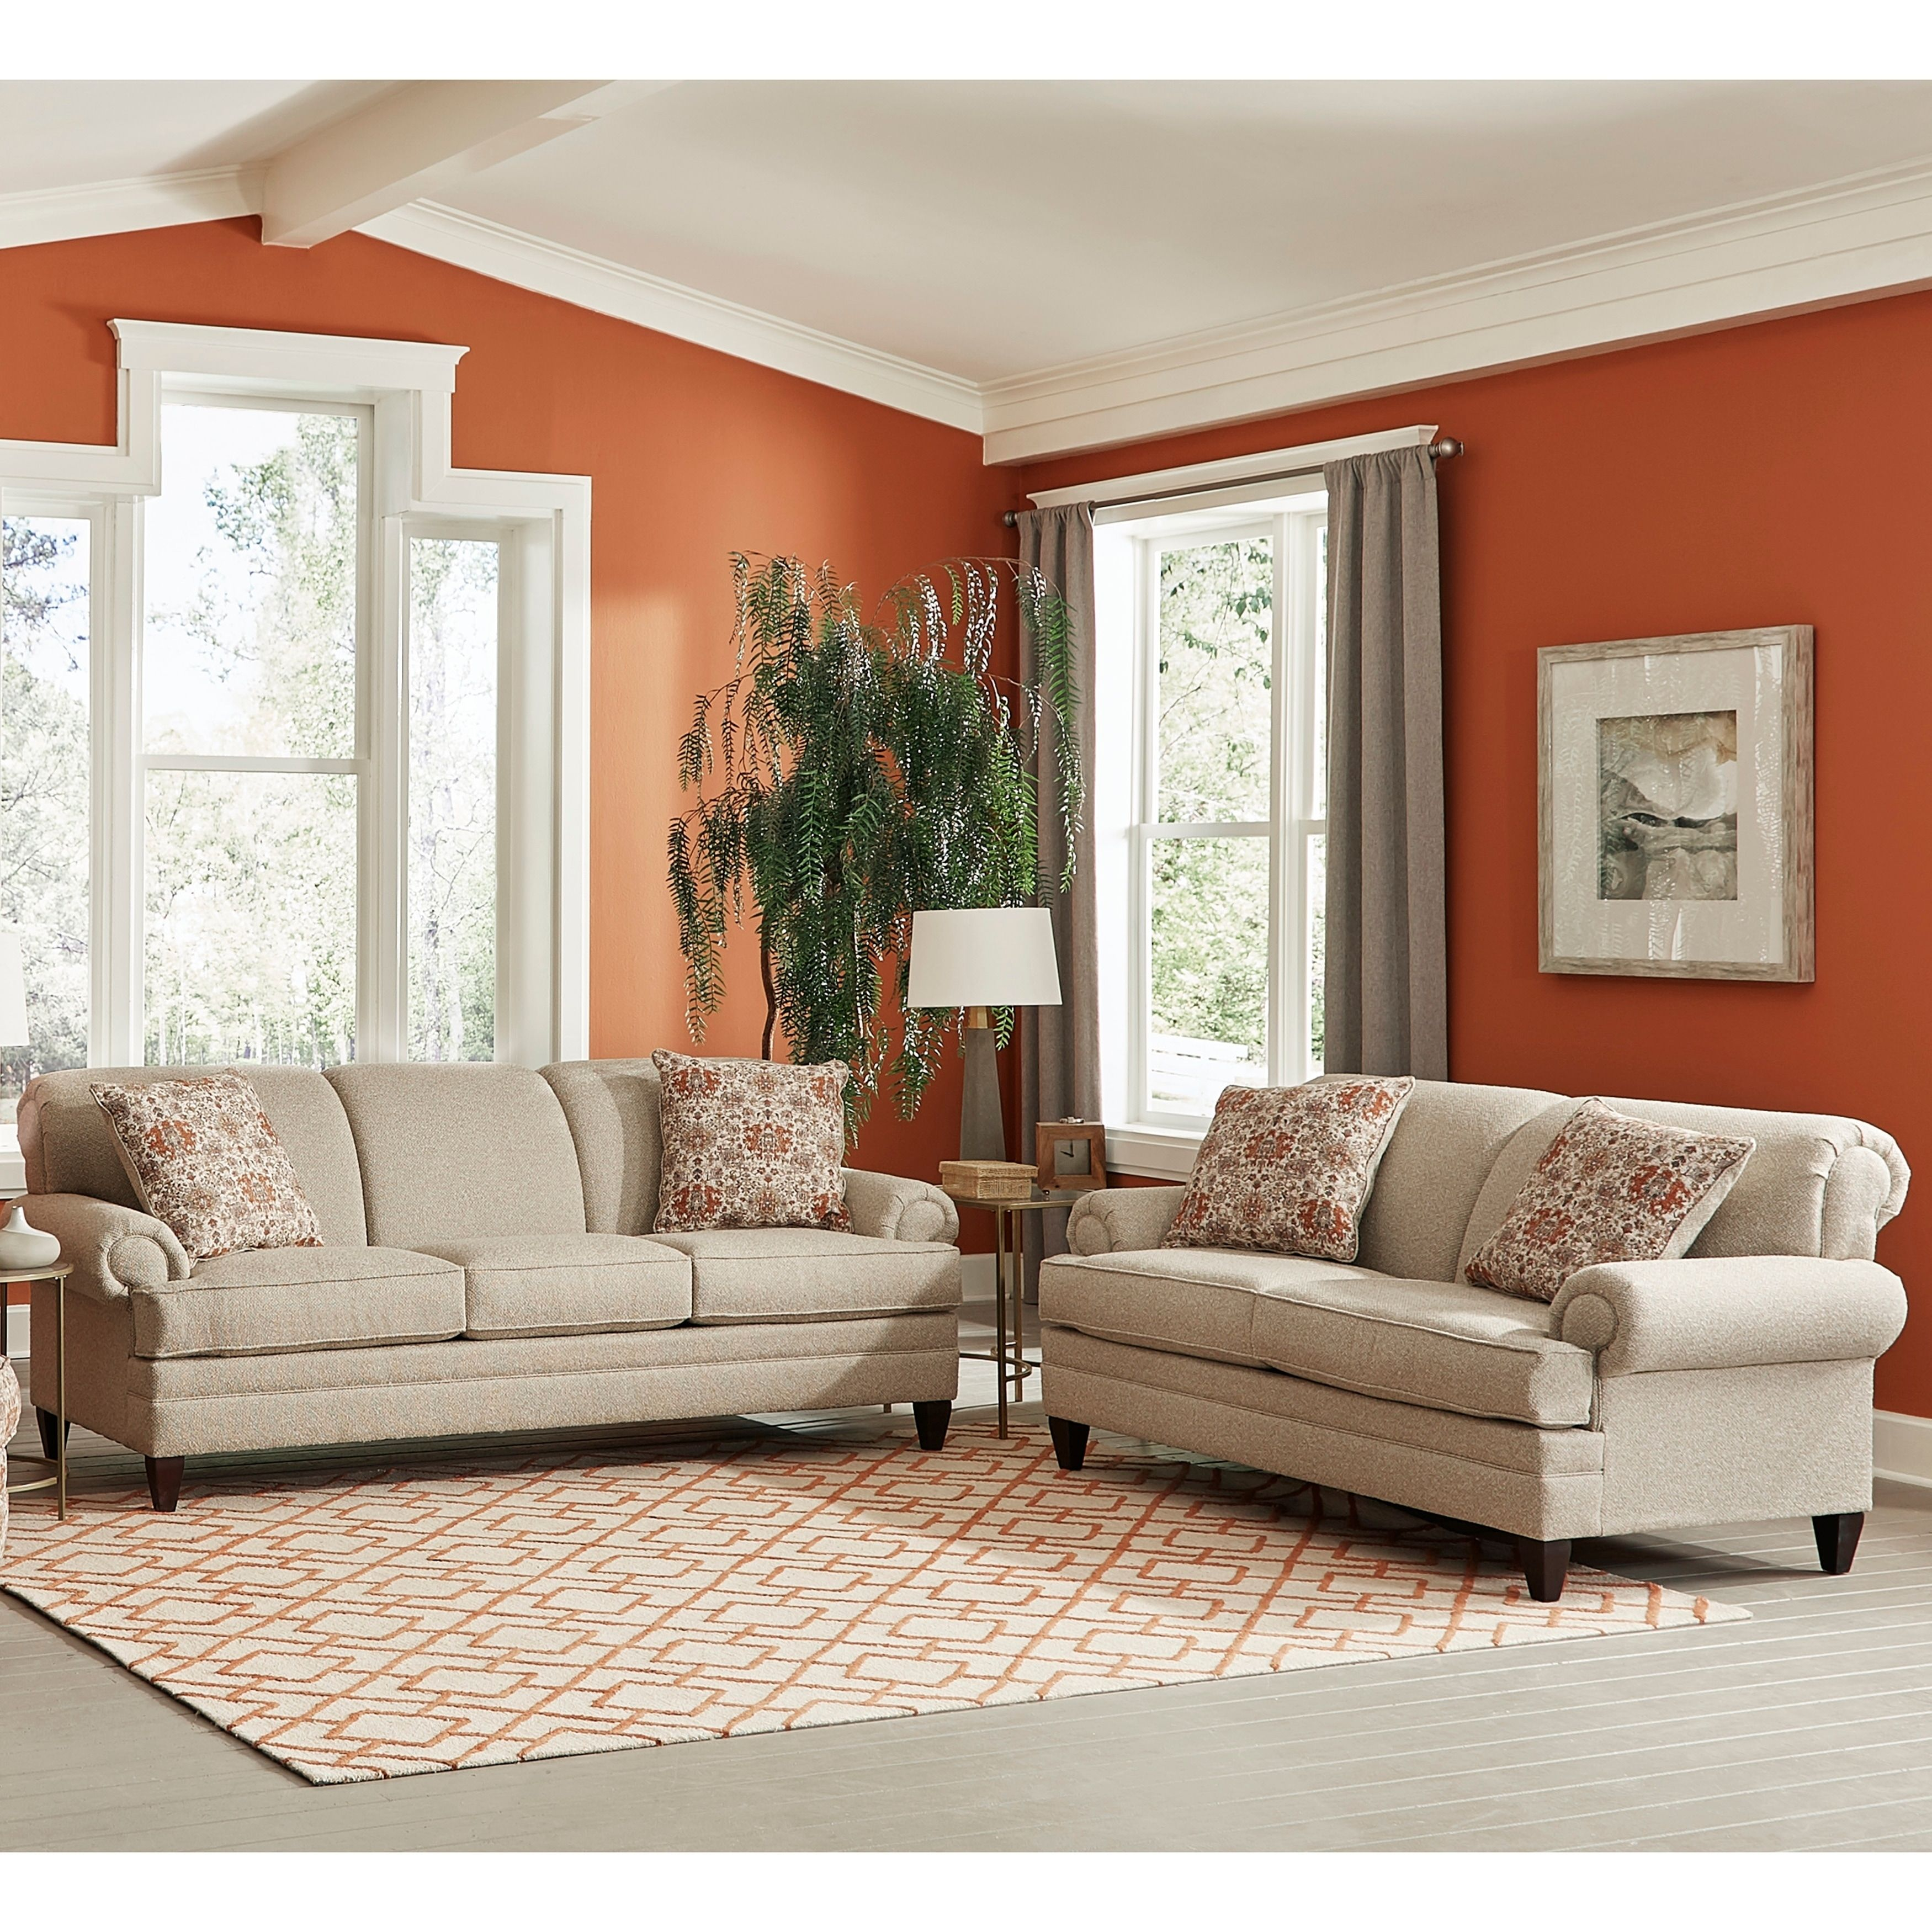 Made In Usa Tilson Beige Fabric Sofa Bed And Loveseat Living Room Sets Beige Fabric Sofa Sofa And Loveseat Set